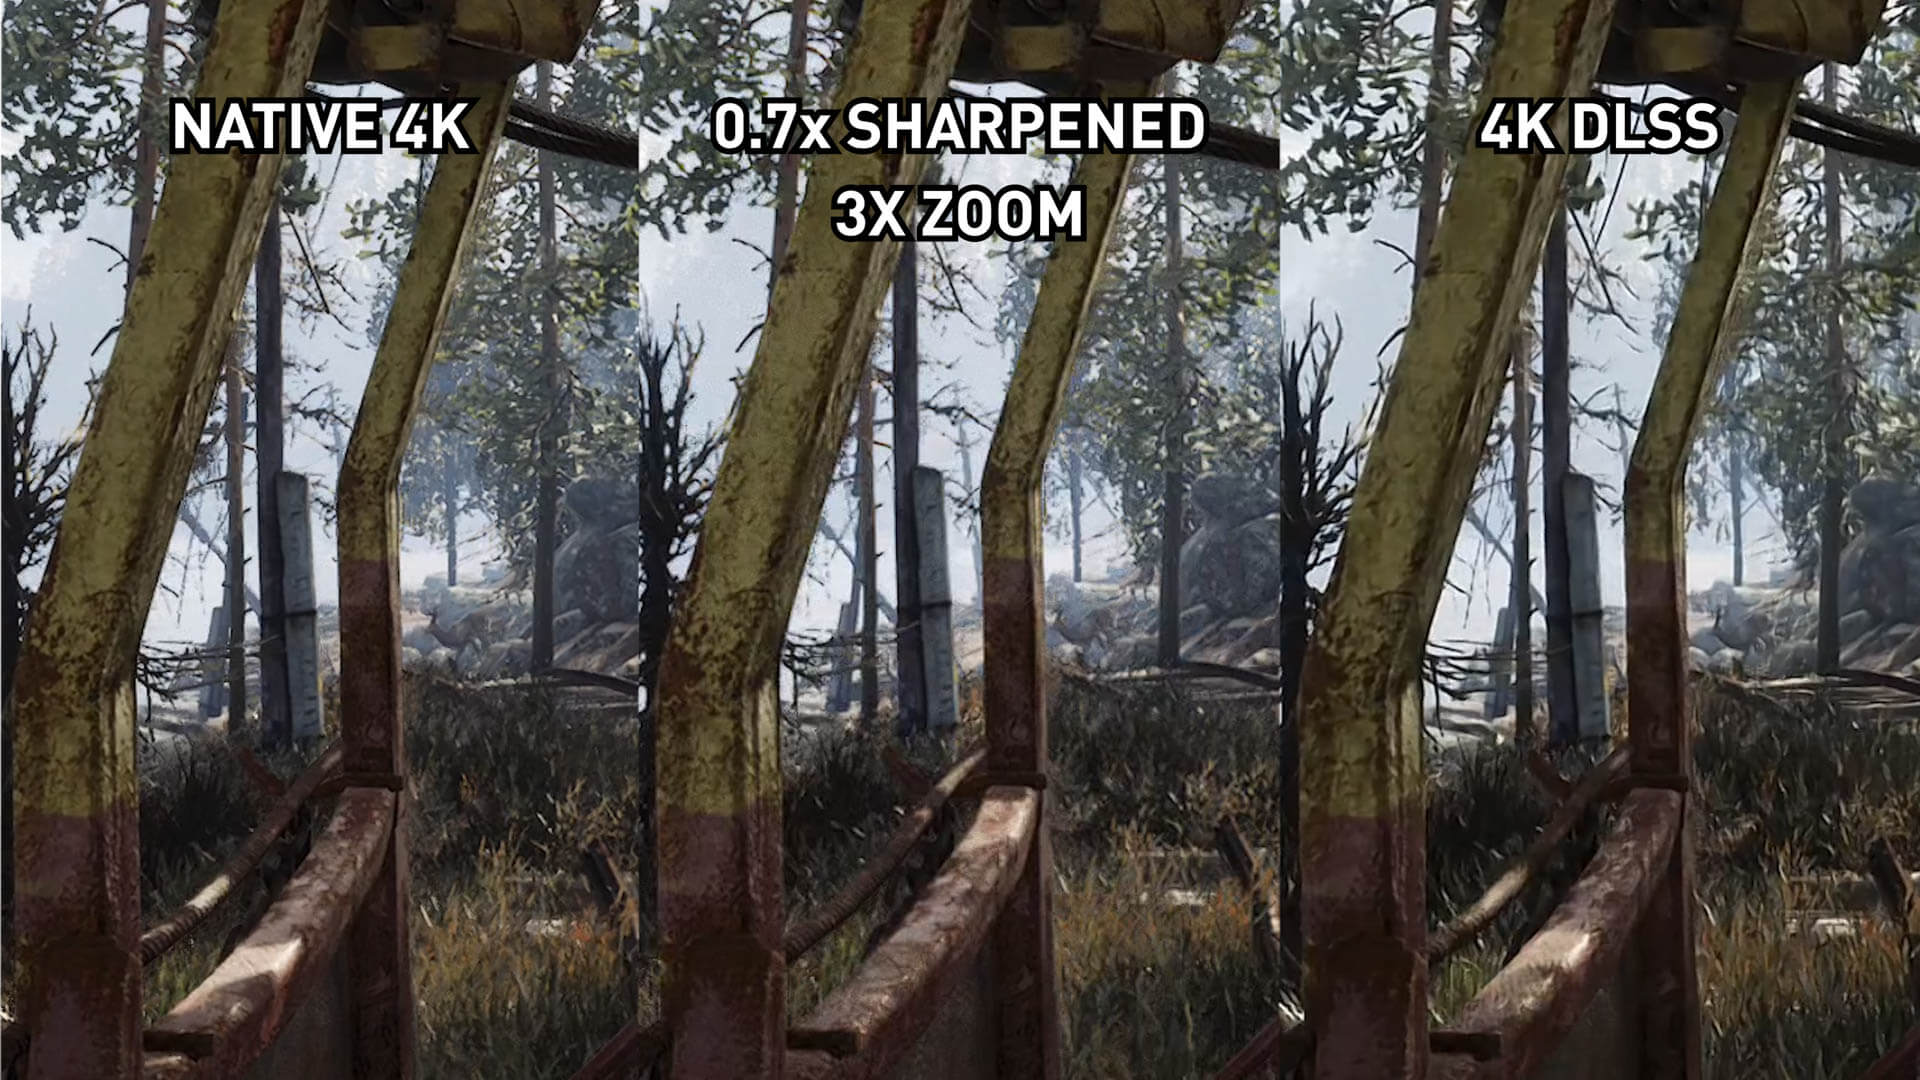 Testing Amd S New Radeon Image Sharpening Is It Better Than Nvidia S Dlss